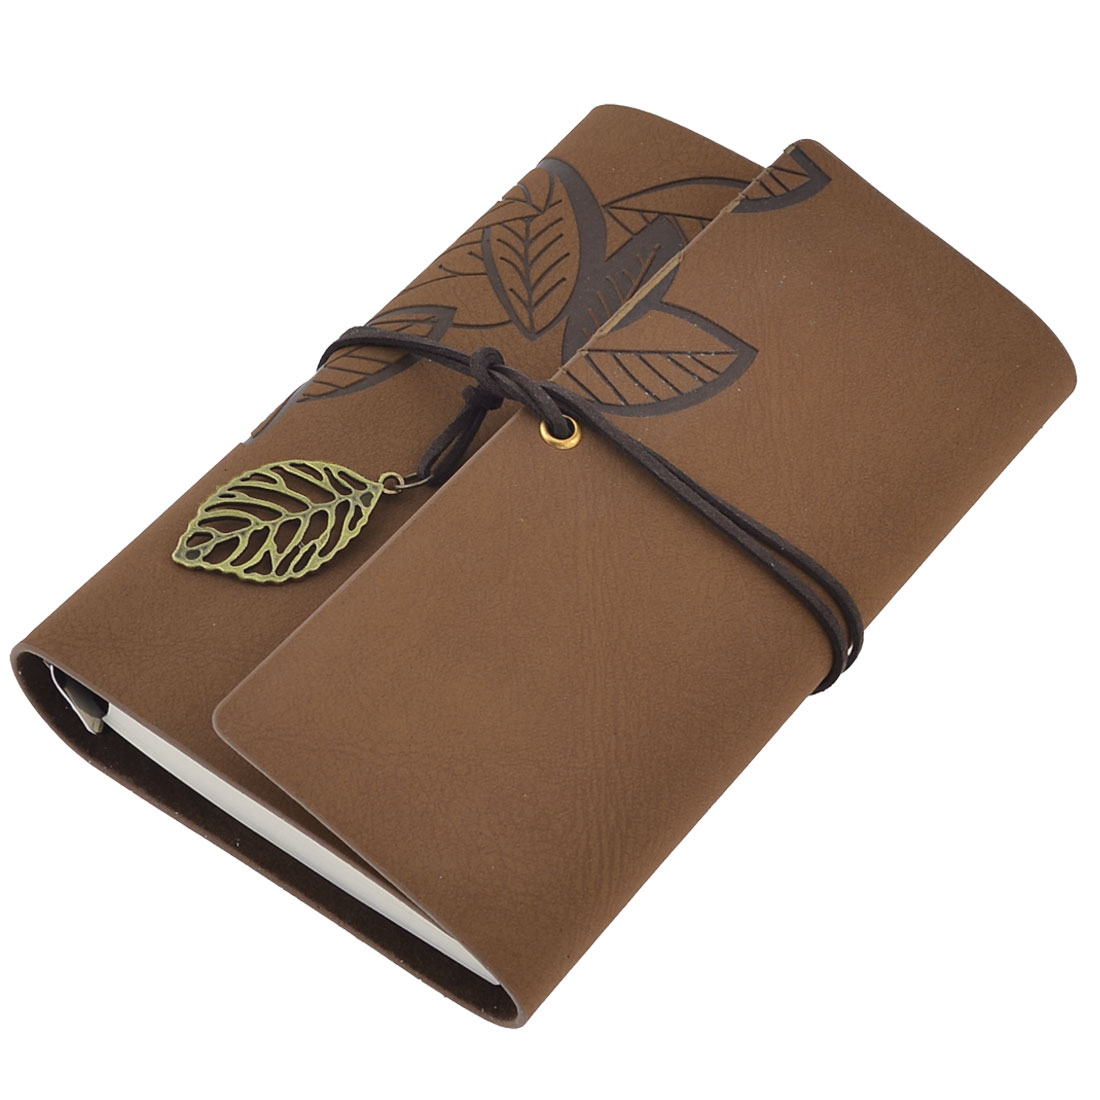 Drawstring Closure Design 6-ring Binder Organizer Writing Notebook Brown